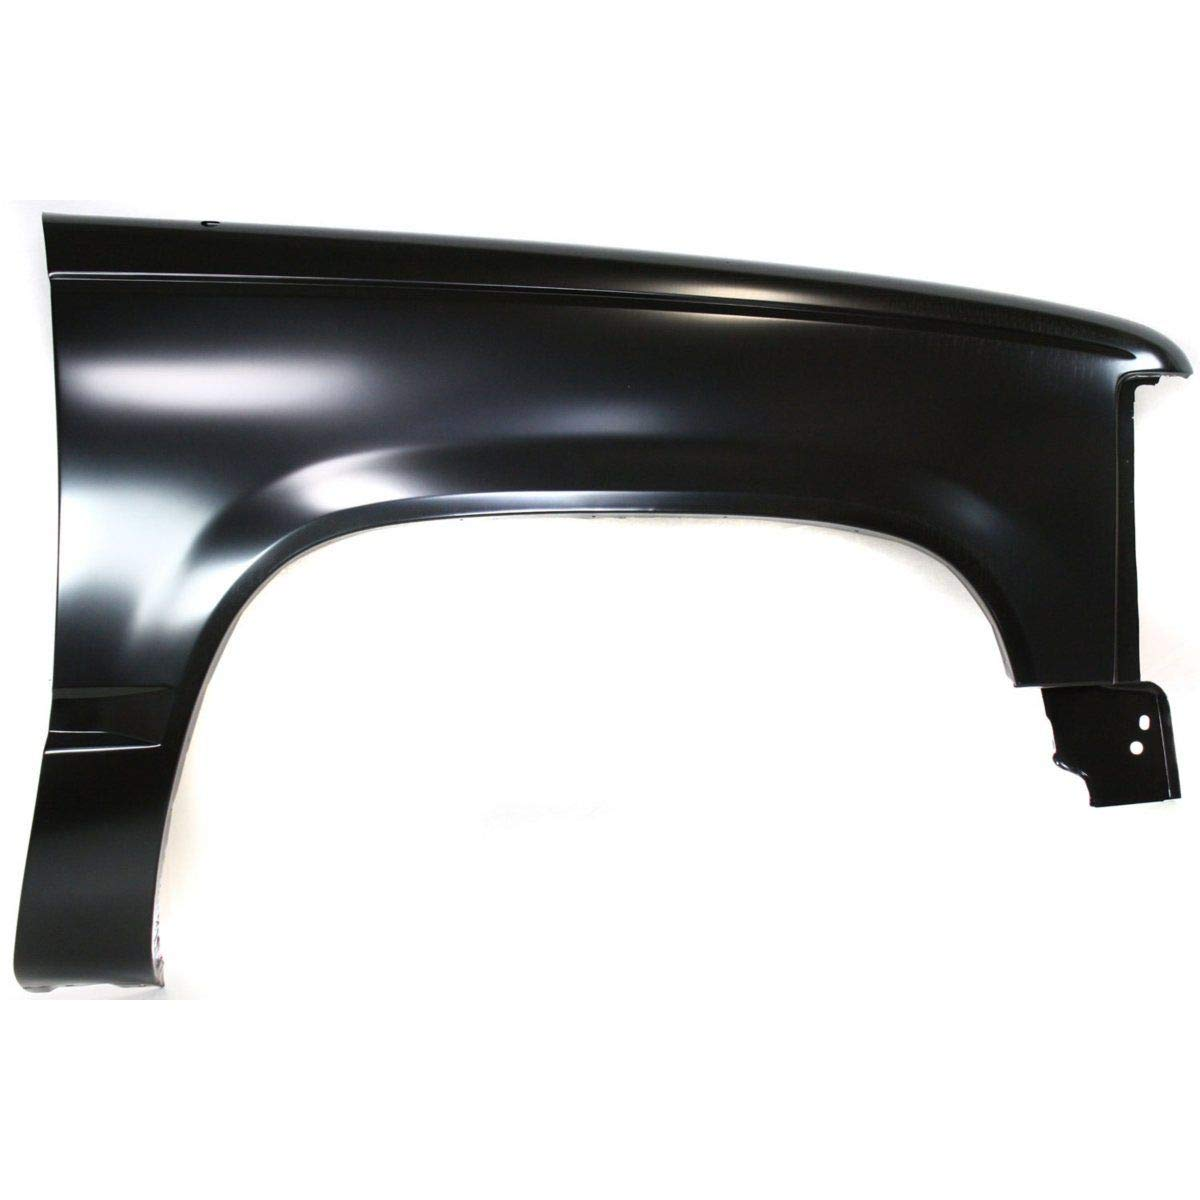 Fender For 95-00 Chevy Tahoe 92-94 Blazer 88-98 C1500 Front Right Primed Steel